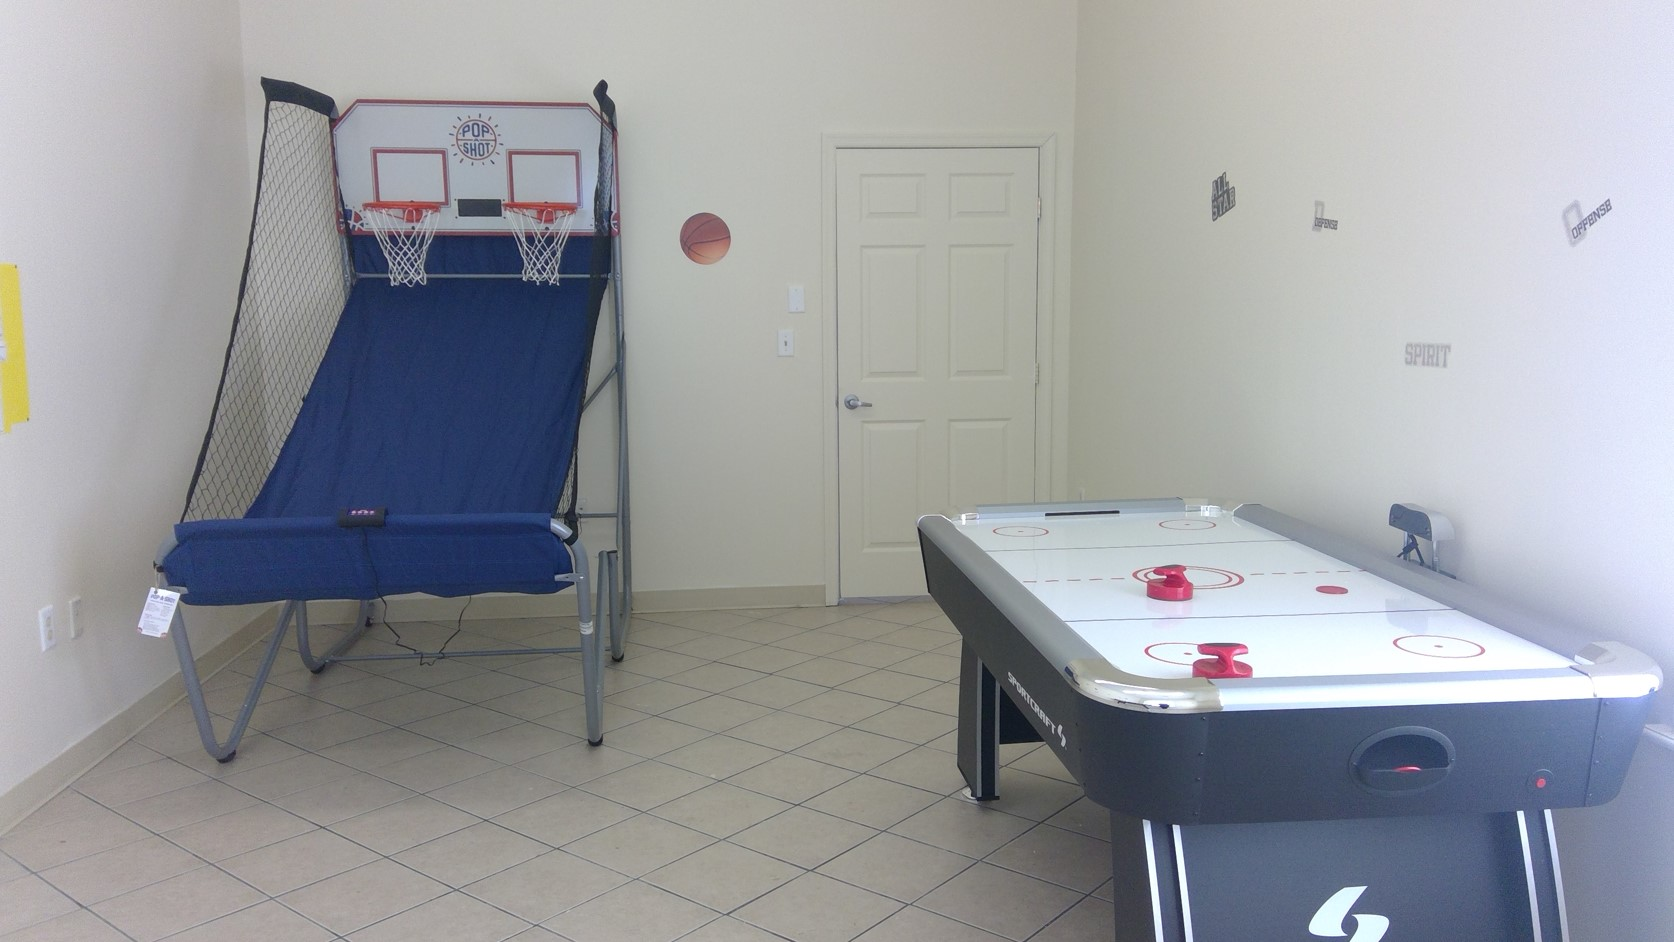 kids party venue game room